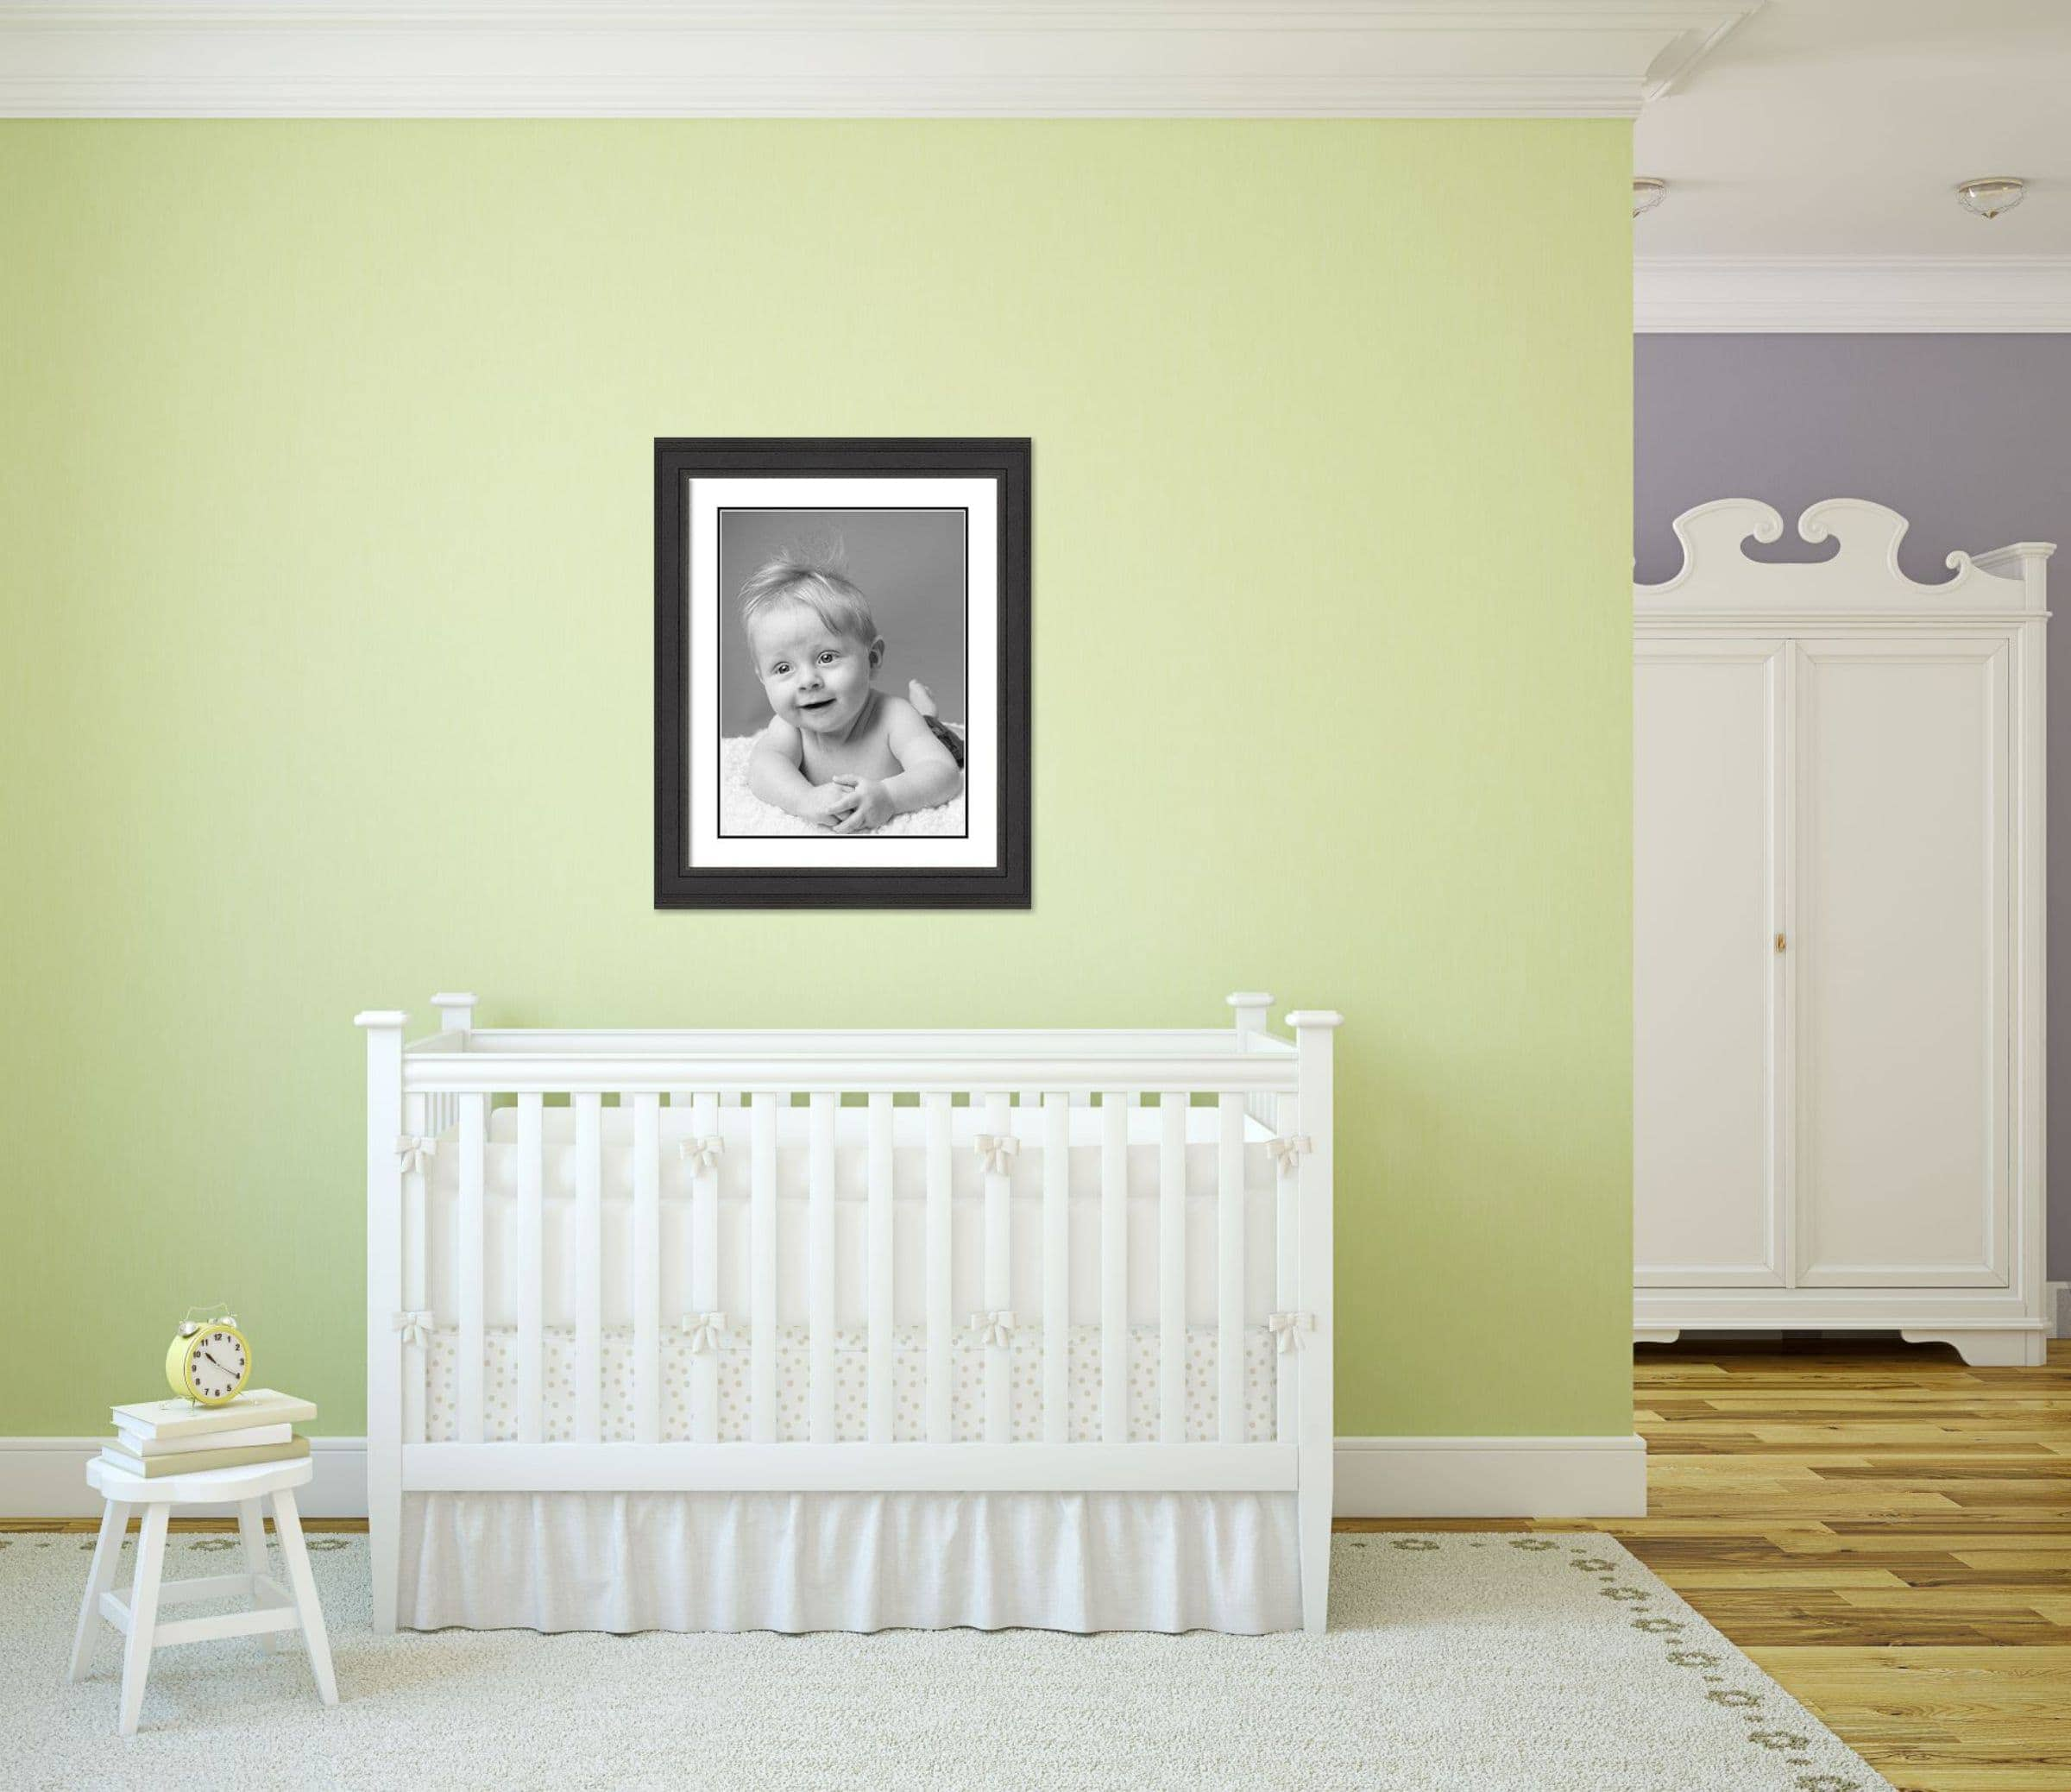 example of a framed photo in a nursery room setting